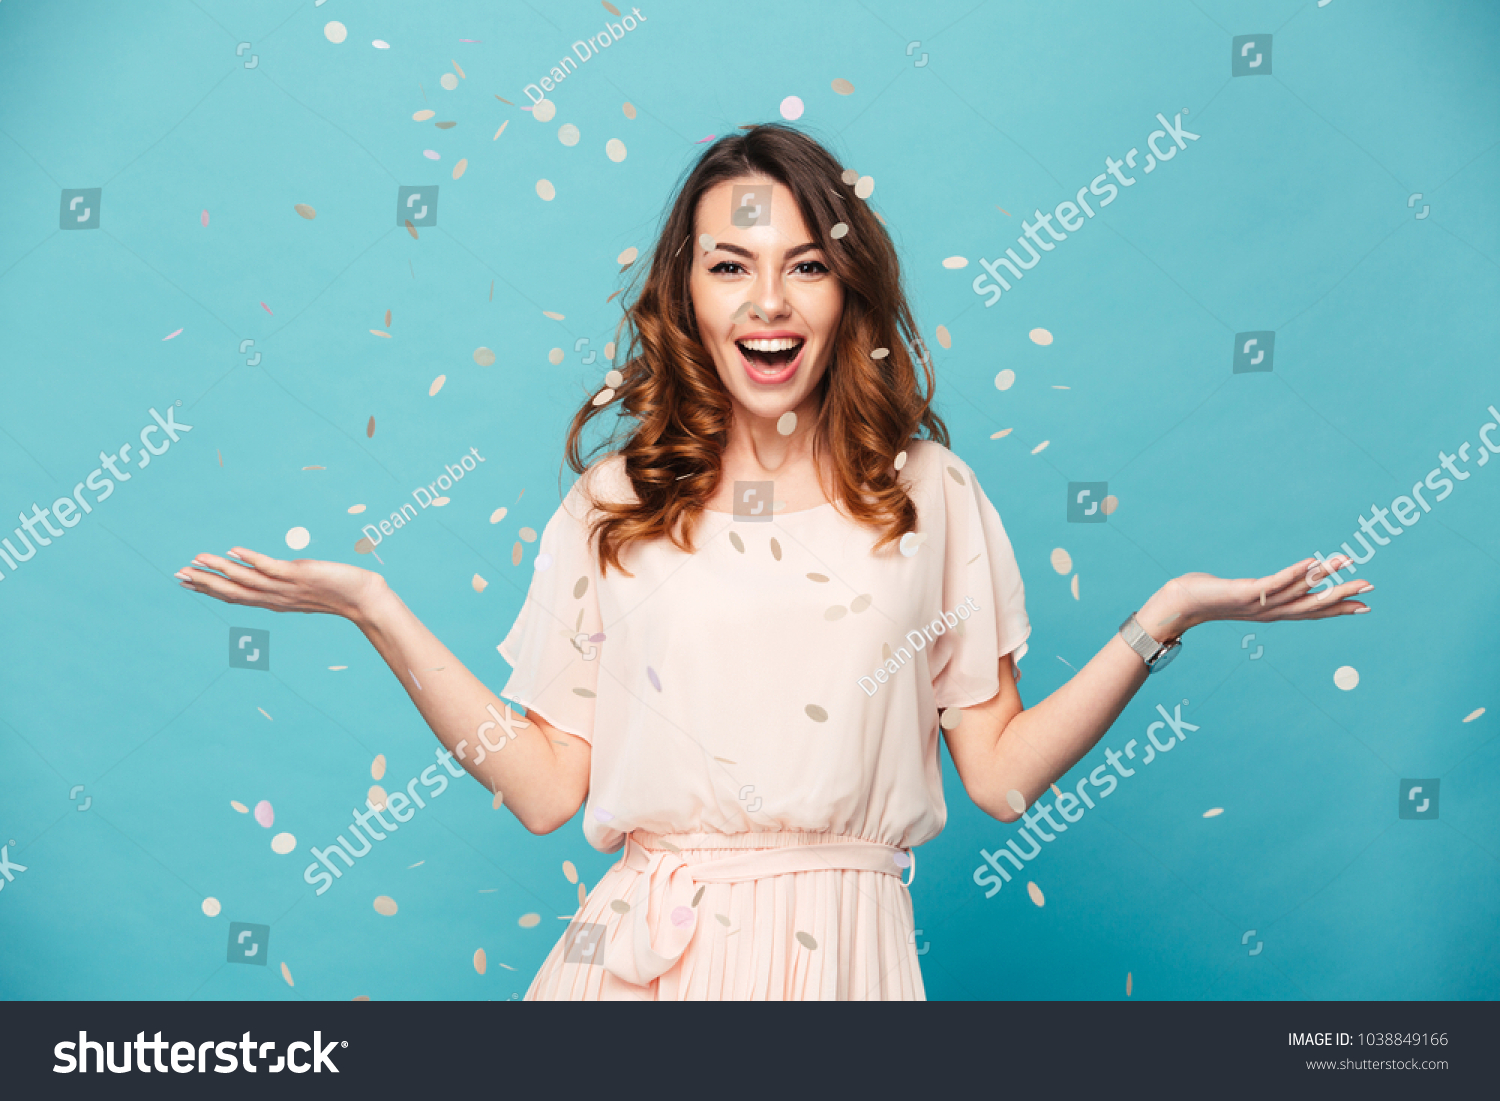 Portrait of a cheerful beautiful girl wearing dress standing standing under confetti rain and celebrating isolated over blue background